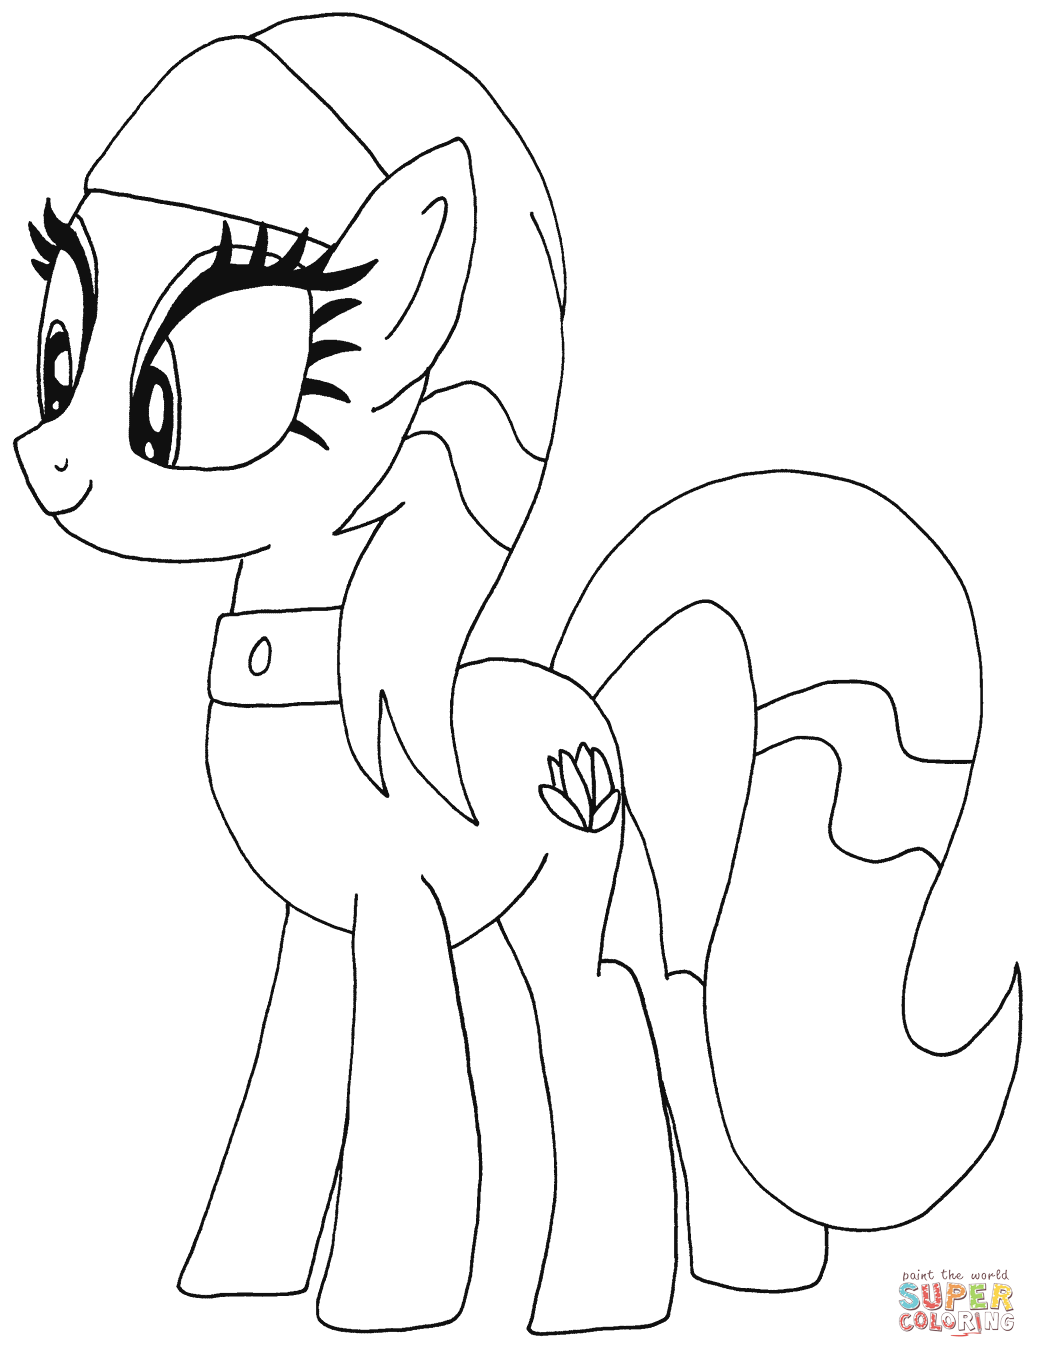 Lotus Blossom My Little Pony from My Little Pony